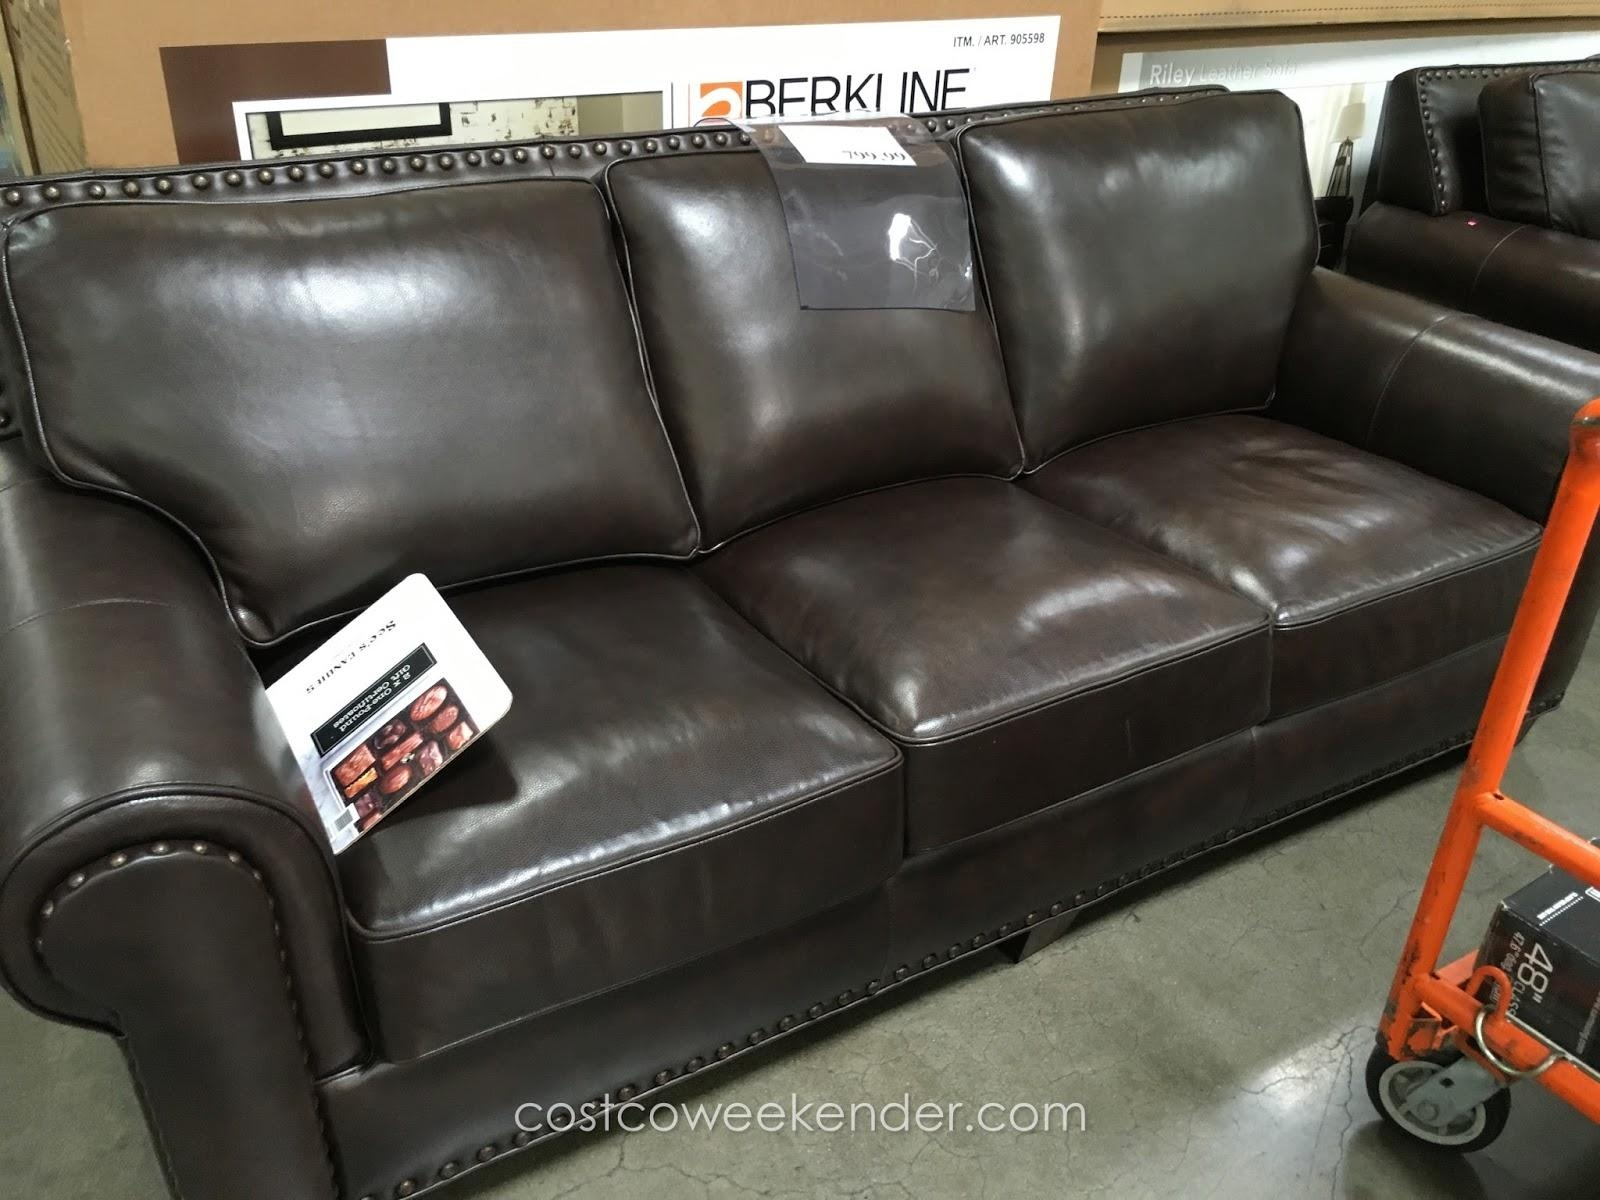 Furniture & Sofa: Enjoy Your Holiday With Costco Home Theater Throughout Berkline Reclining Sofas (View 17 of 20)